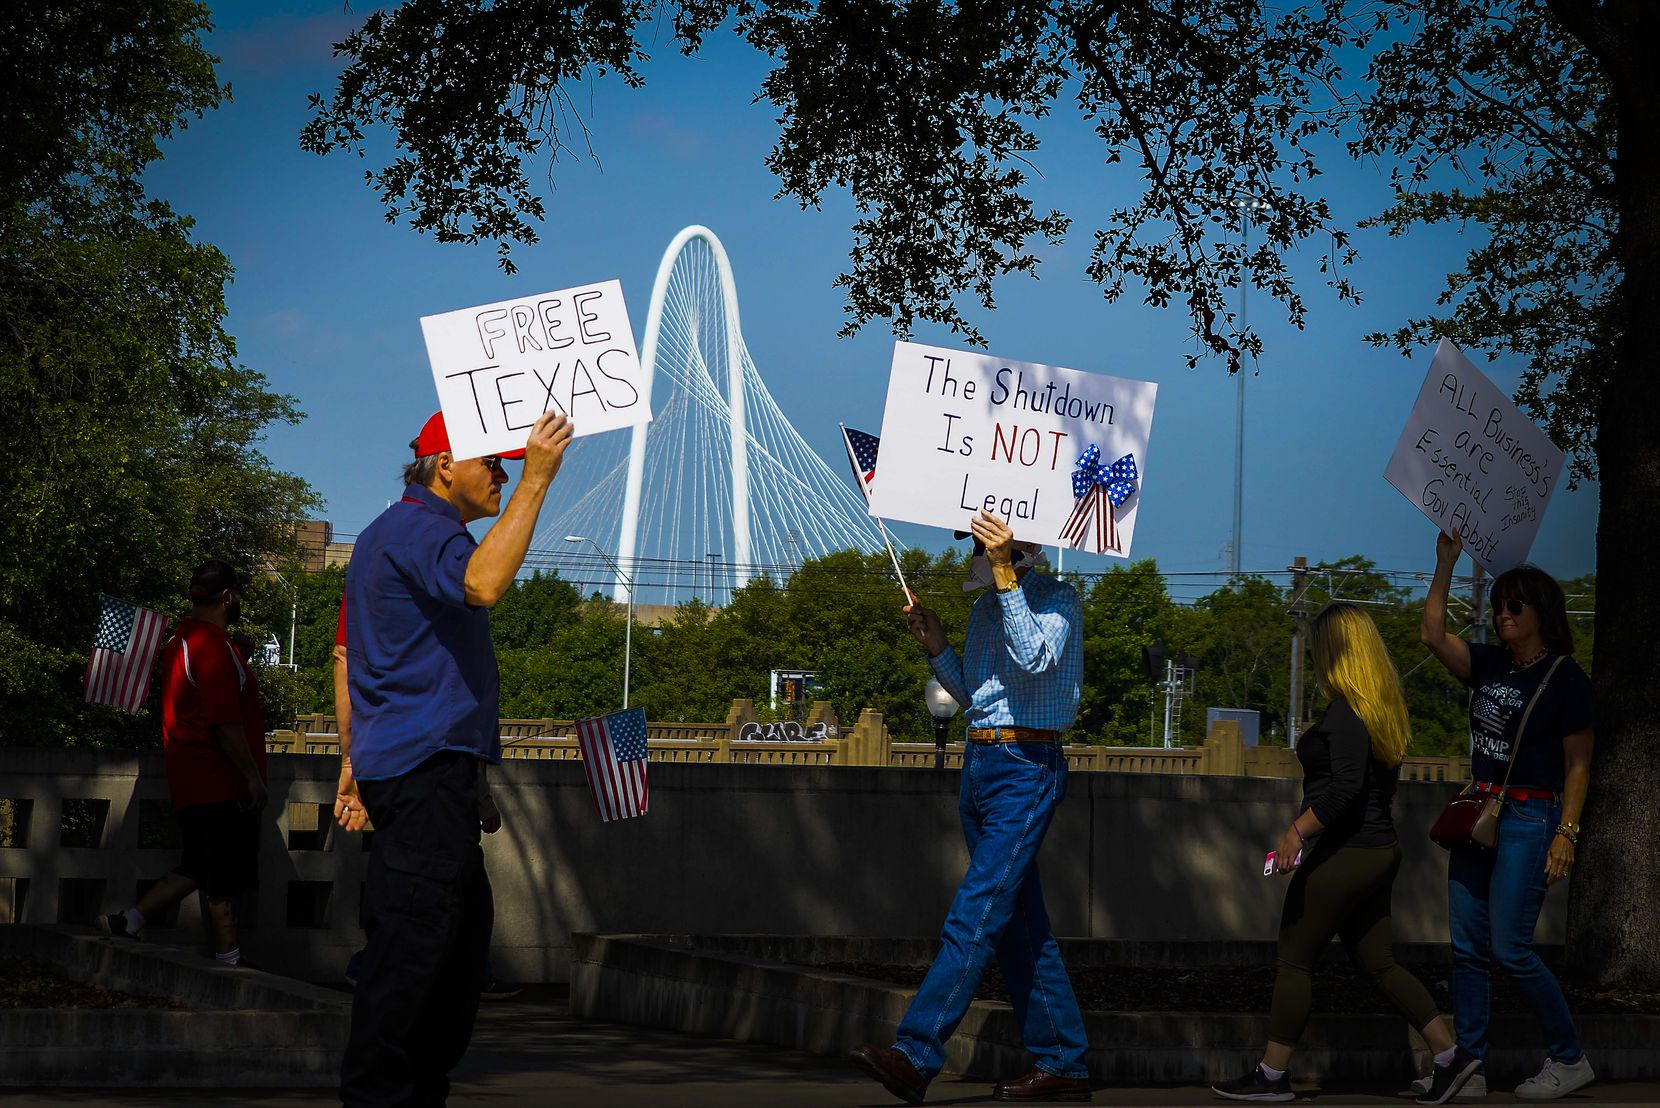 Protesters rallied against government stay-at-home orders at Dealey Plaza in Dallas on April 21, 2020.